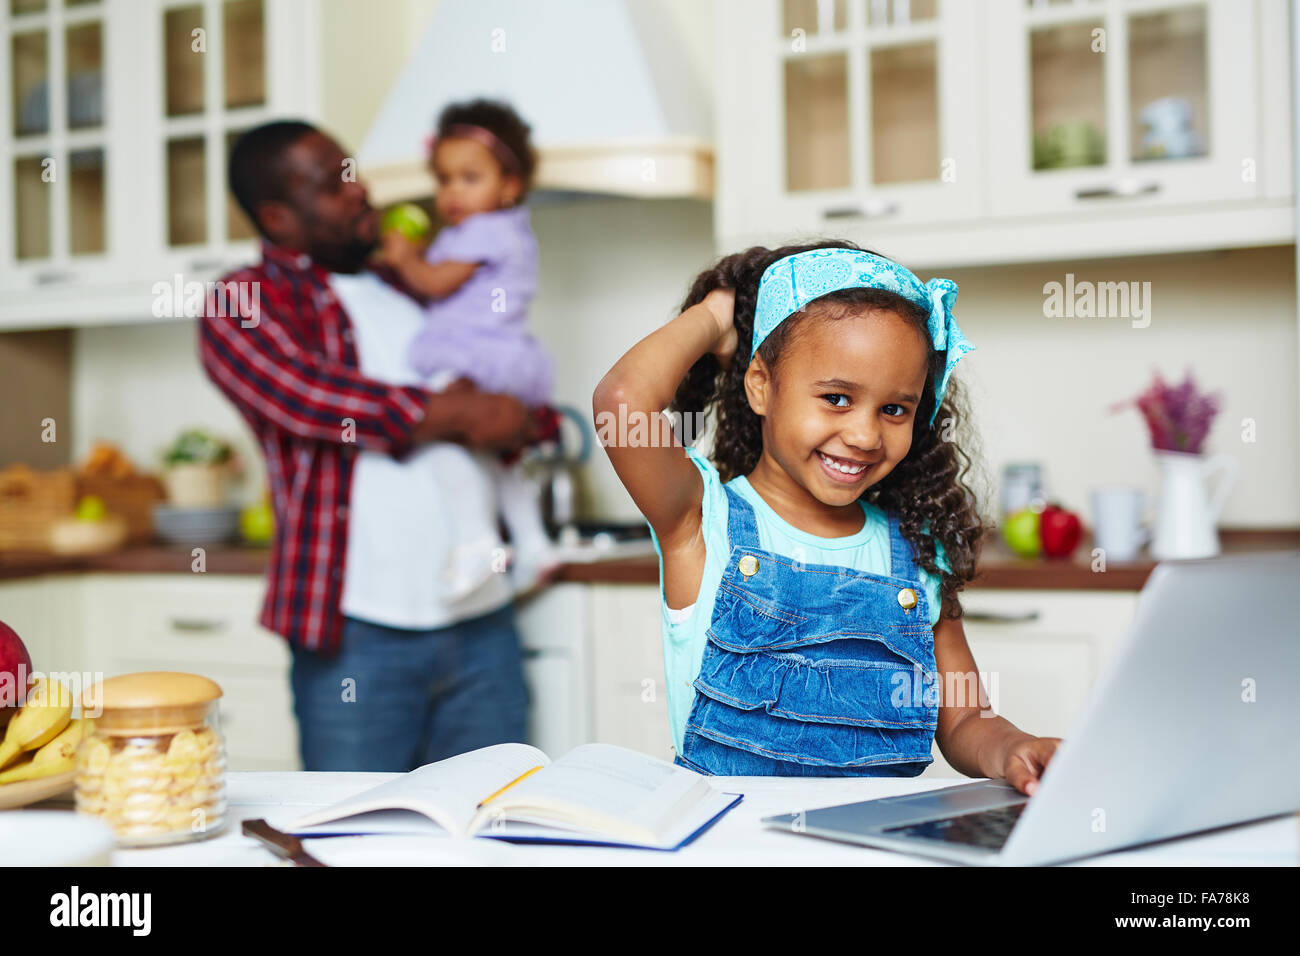 Happy African-American girl looking at camera while networking in the kitchen - Stock Image